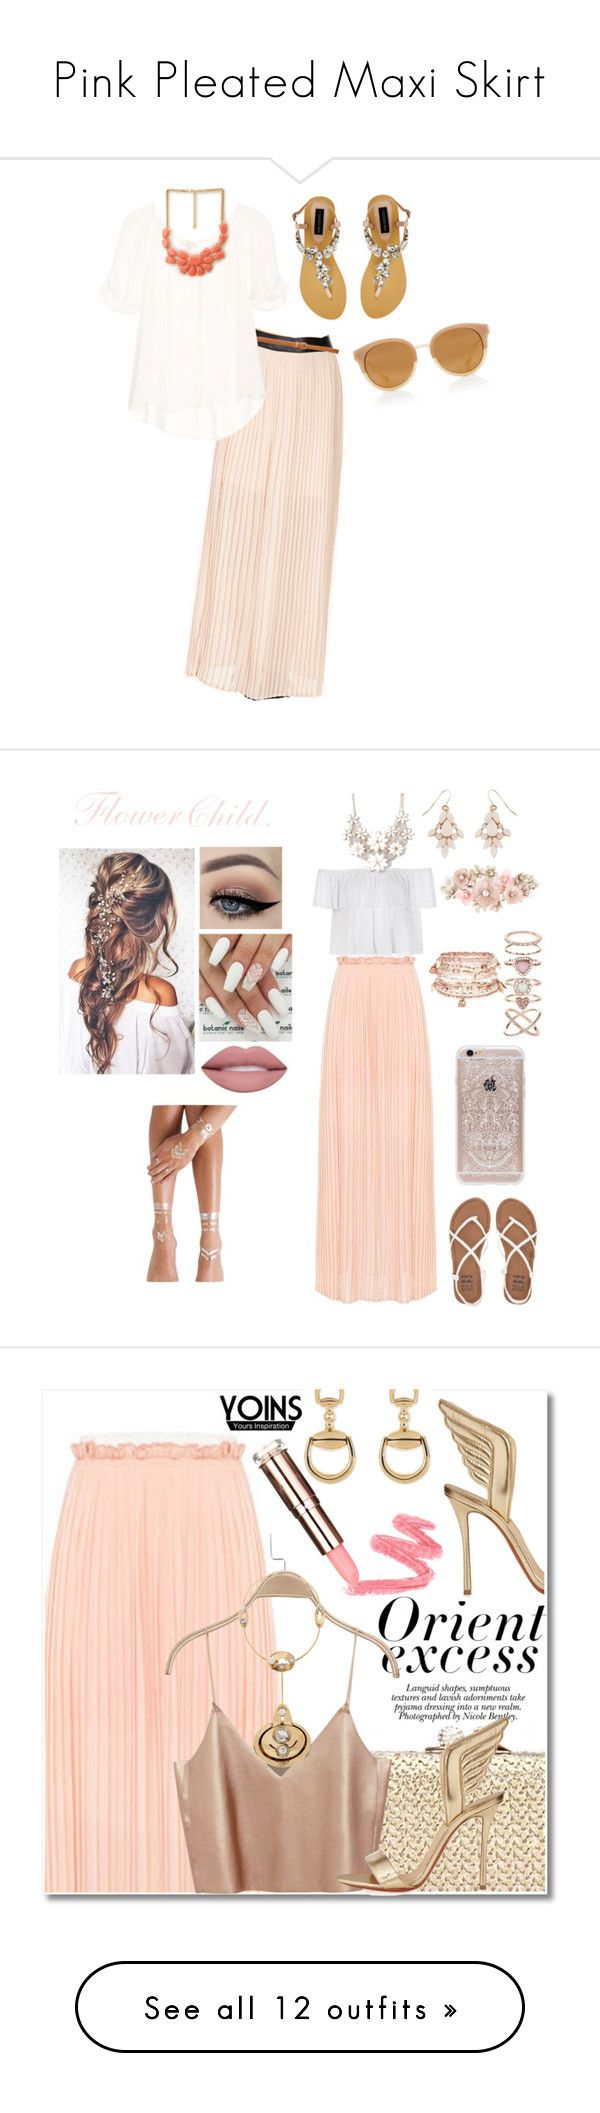 """""""Pink Pleated Maxi Skirt"""" by fairywitch ❤ liked on Polyvore featuring Forever 21, Joie, Forever New, Tory Burch, Ally Fashion, Flash Tattoos, Full Tilt, Accessorize, Billabong and Rifle Paper Co"""